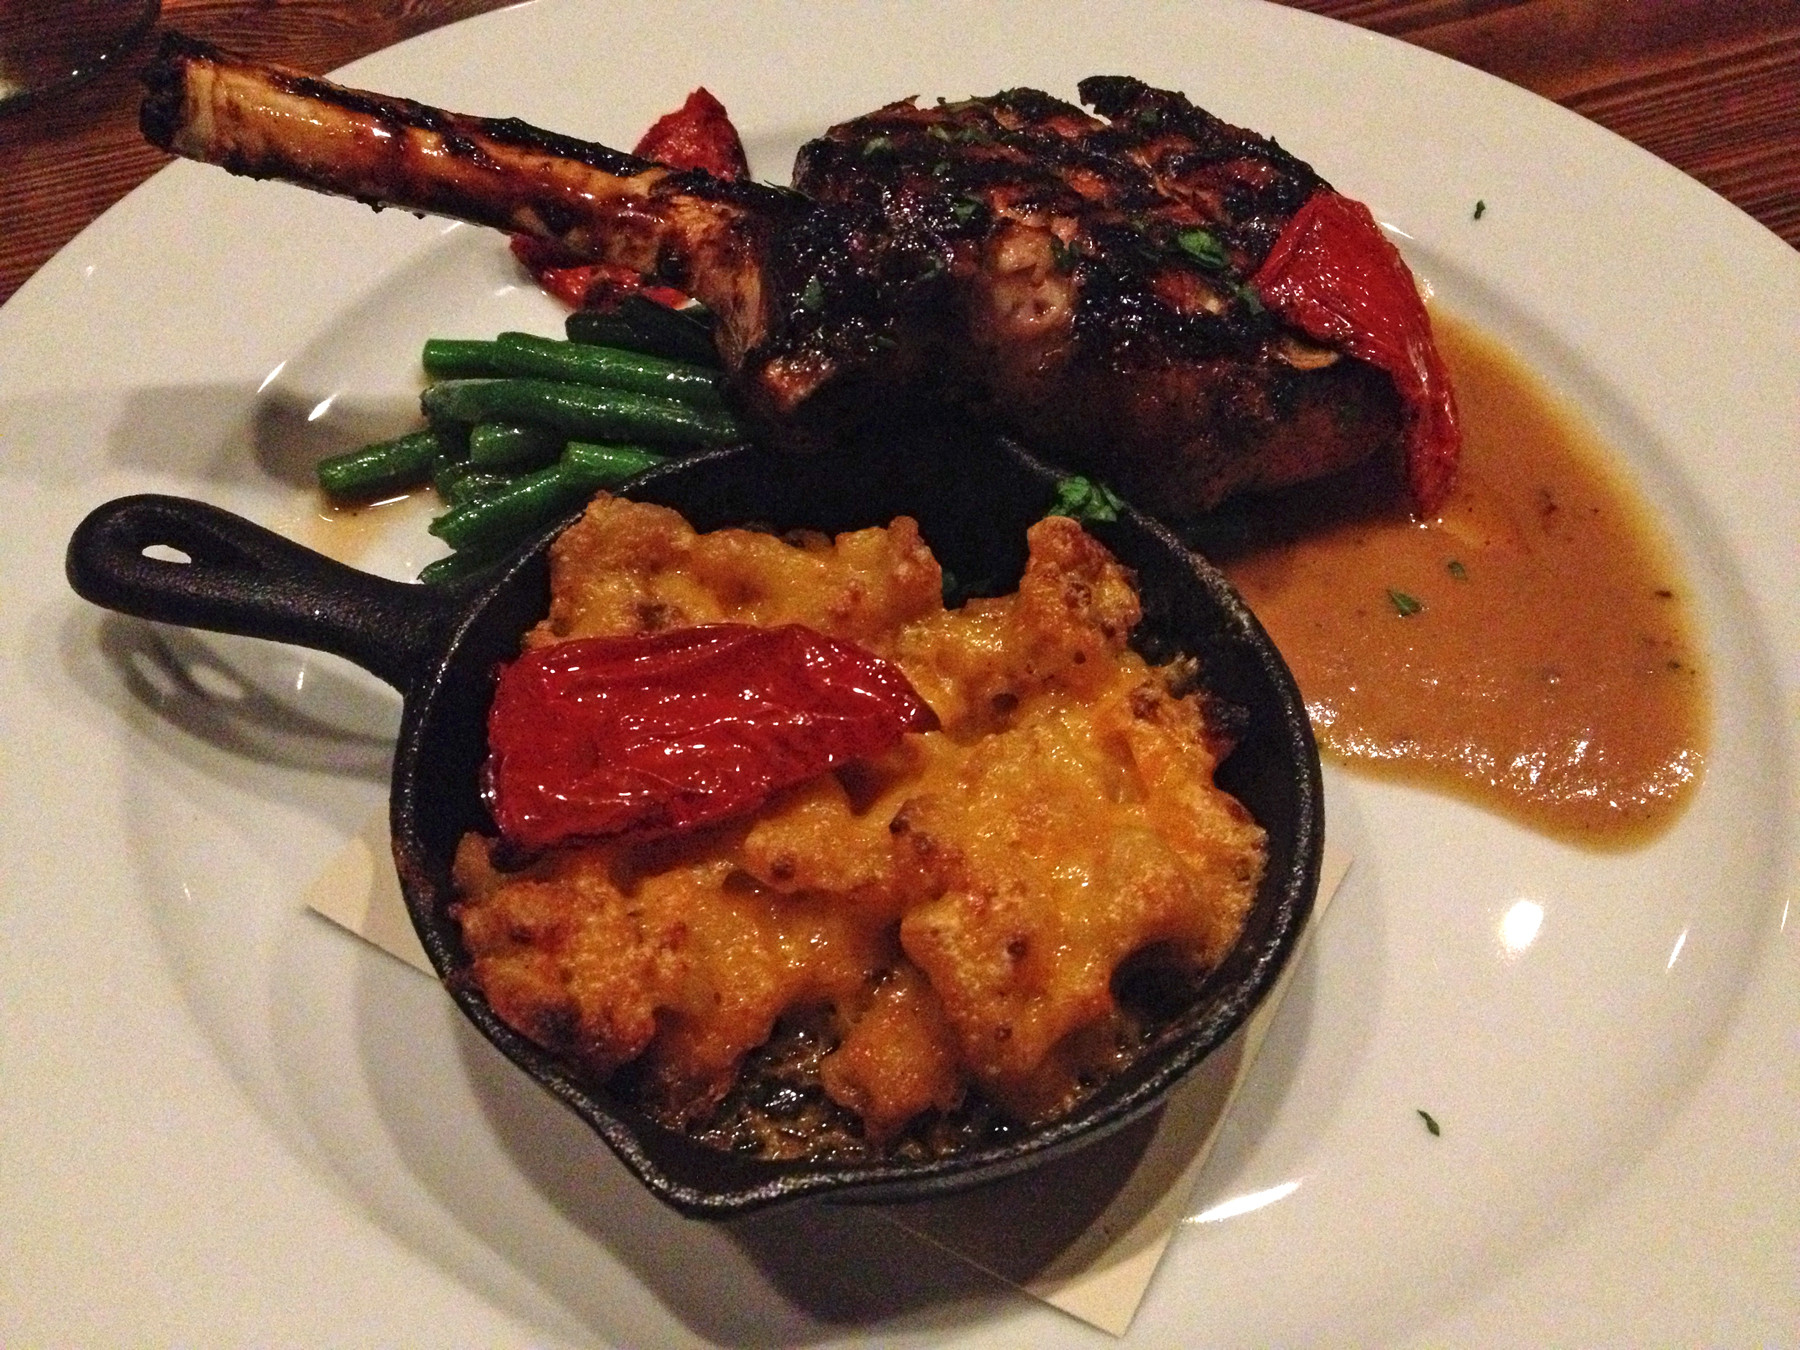 The grilled pork chop with red pepper jelly glaze and smoky mac 'n' cheese is good, but it didn't steal my heart.